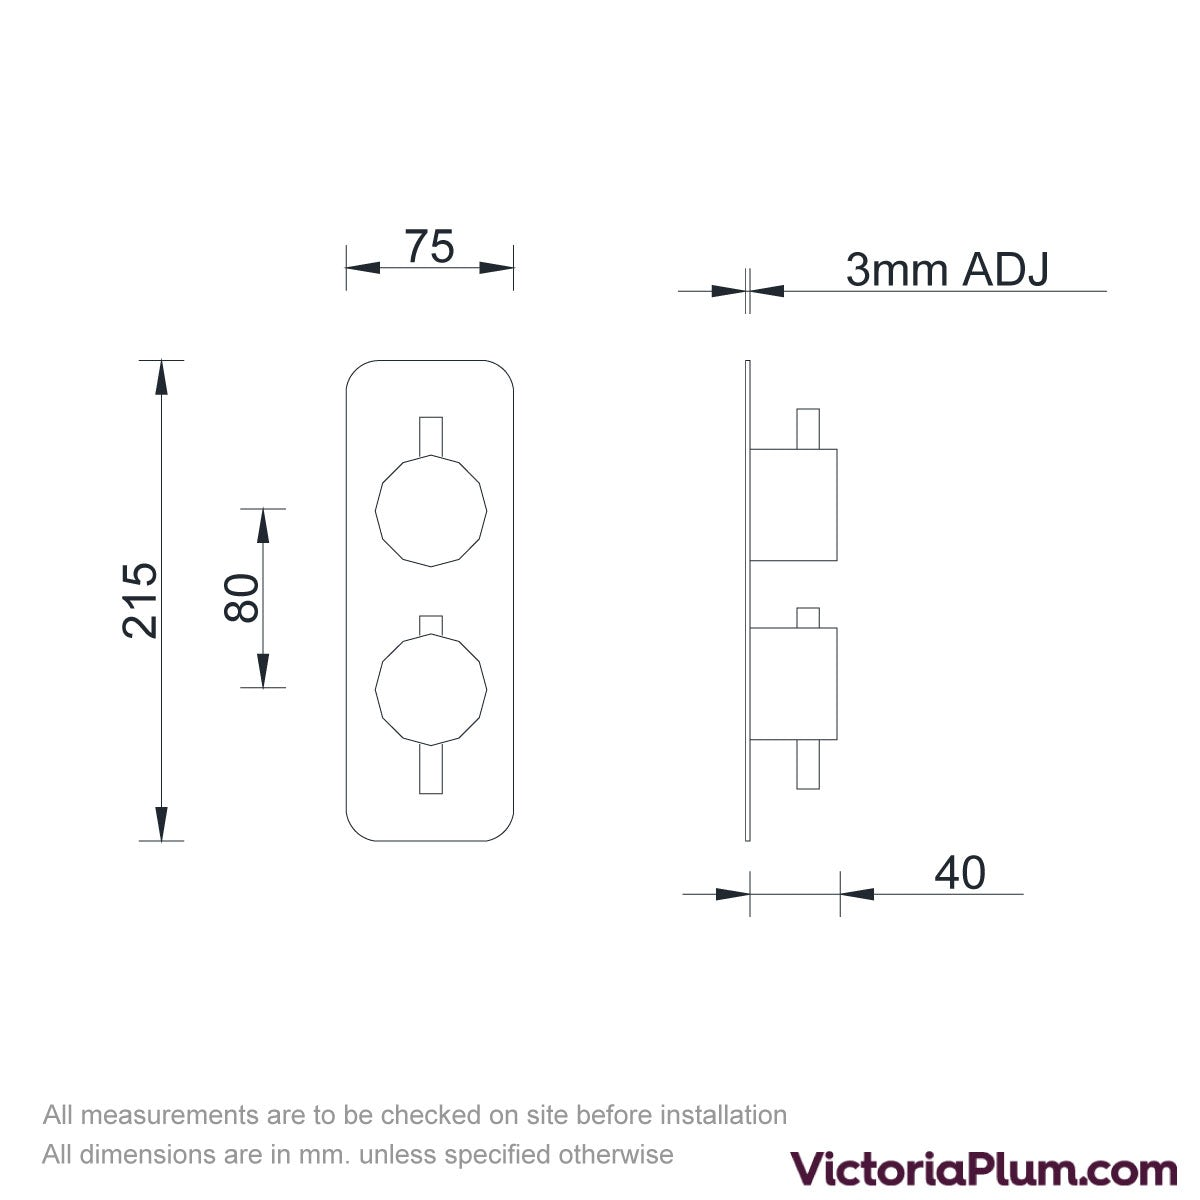 Dimensions for Mode Heath twin thermostatic shower valve